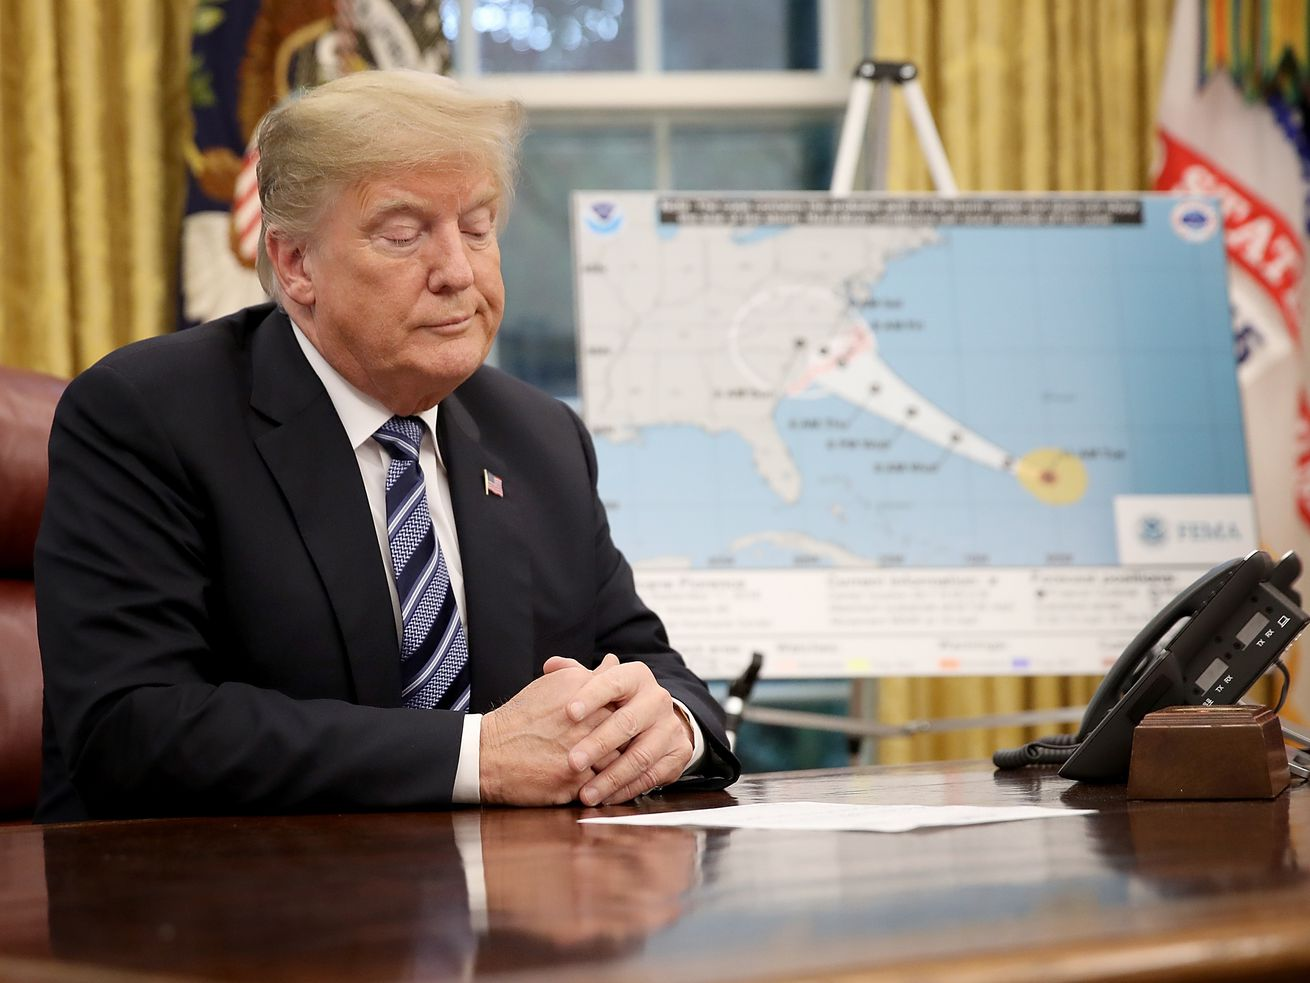 President Donald Trump listens to FEMA Administrator Brock Long during a meeting on Hurricane Florence in September 2018.